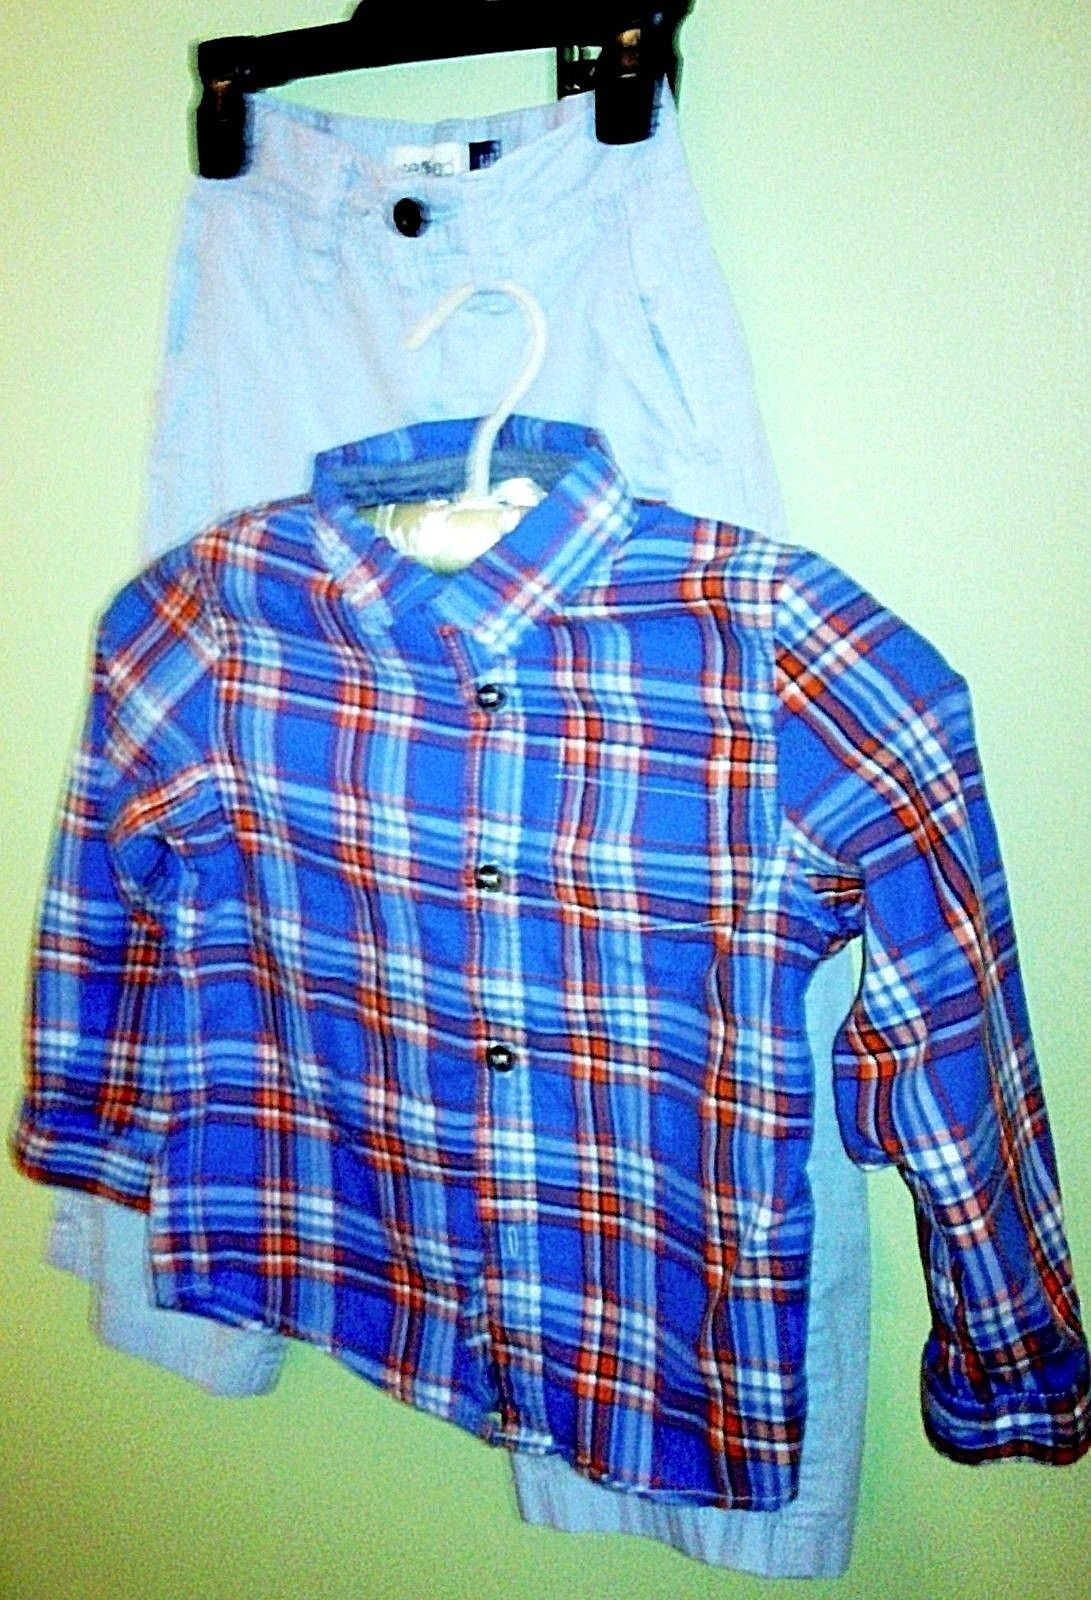 Boys/Toddler Set GAP Relaxed LT Blue Adj. Pants & Cat Jack L/S Button Shirt Blue image 2